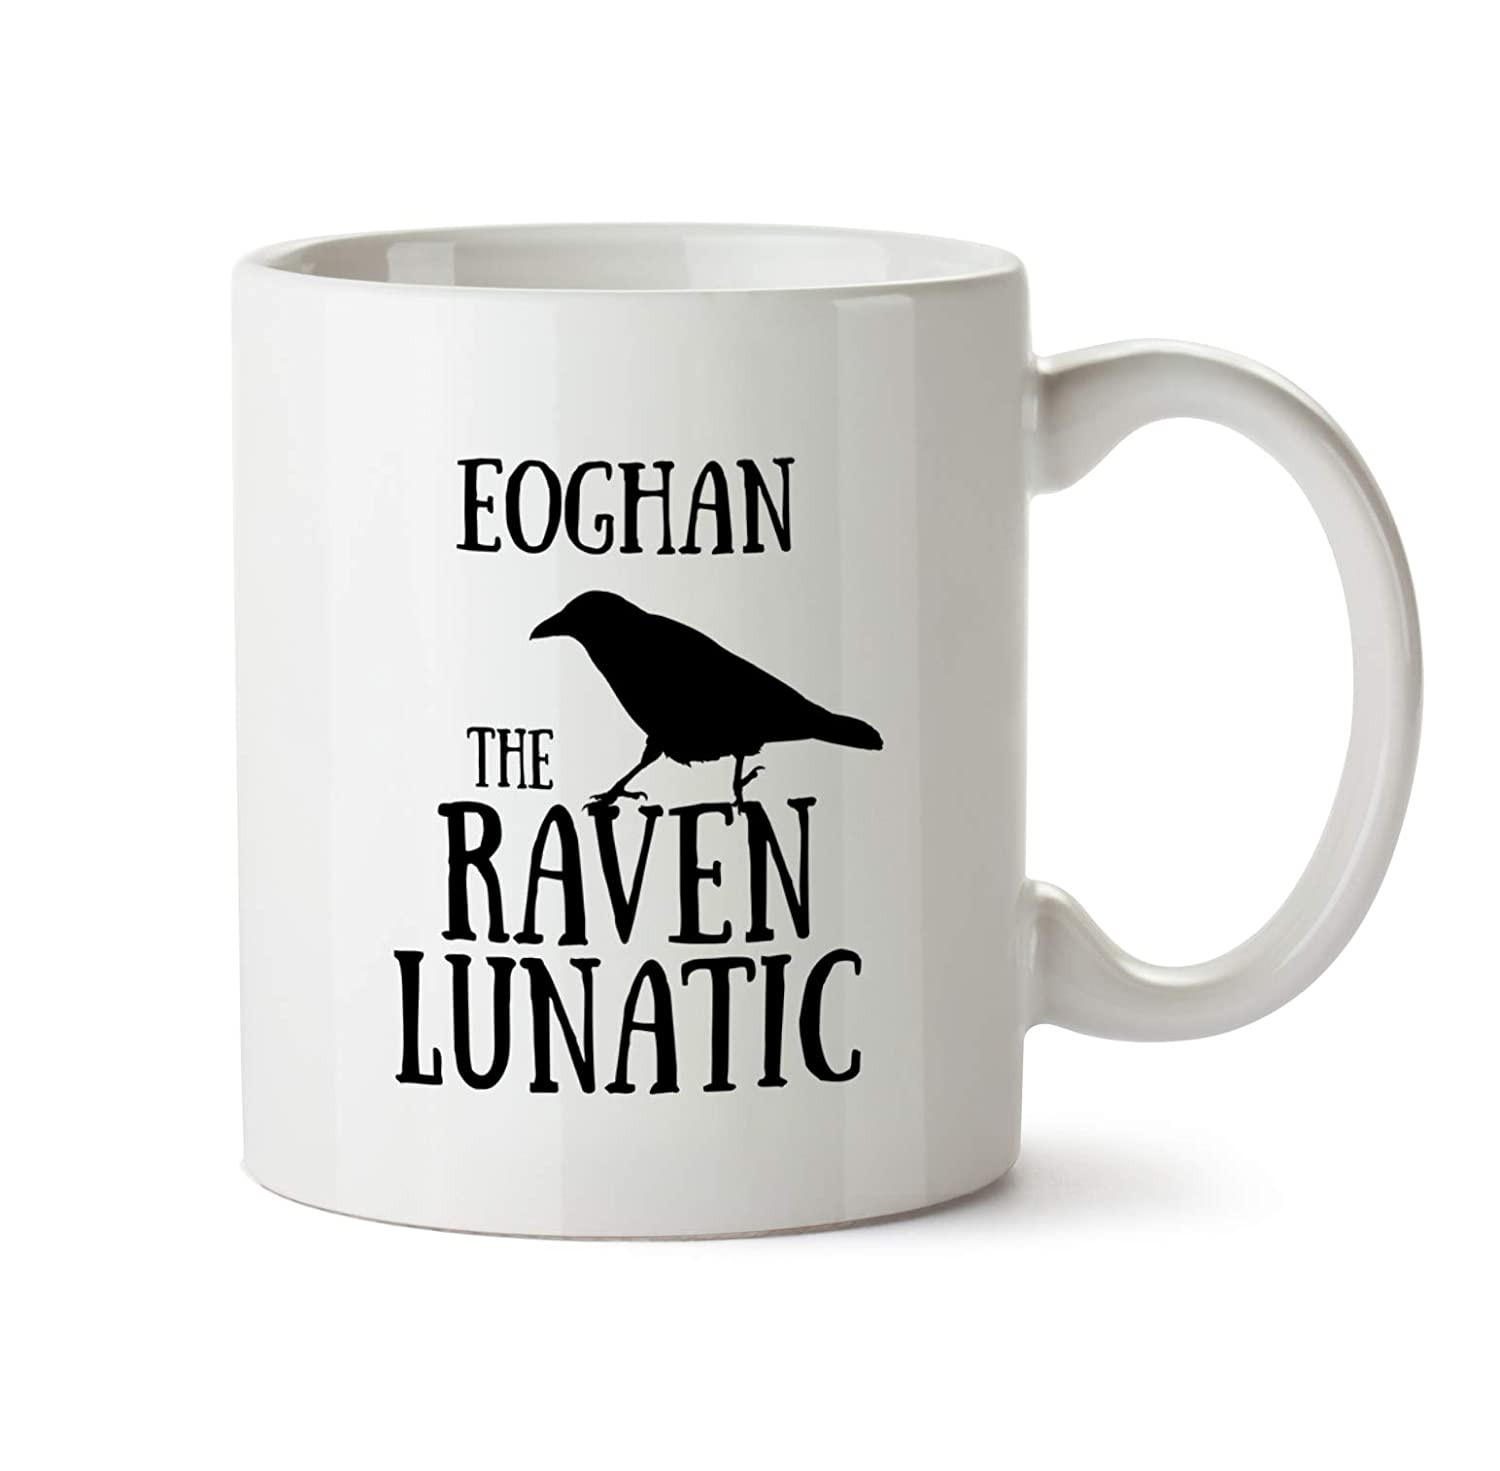 PG2006 Unique Unusual Coffee Tea Novelty Present for Birthdays and Christmas Eoghan Name Raven Lunatic Saying Coffee Cup